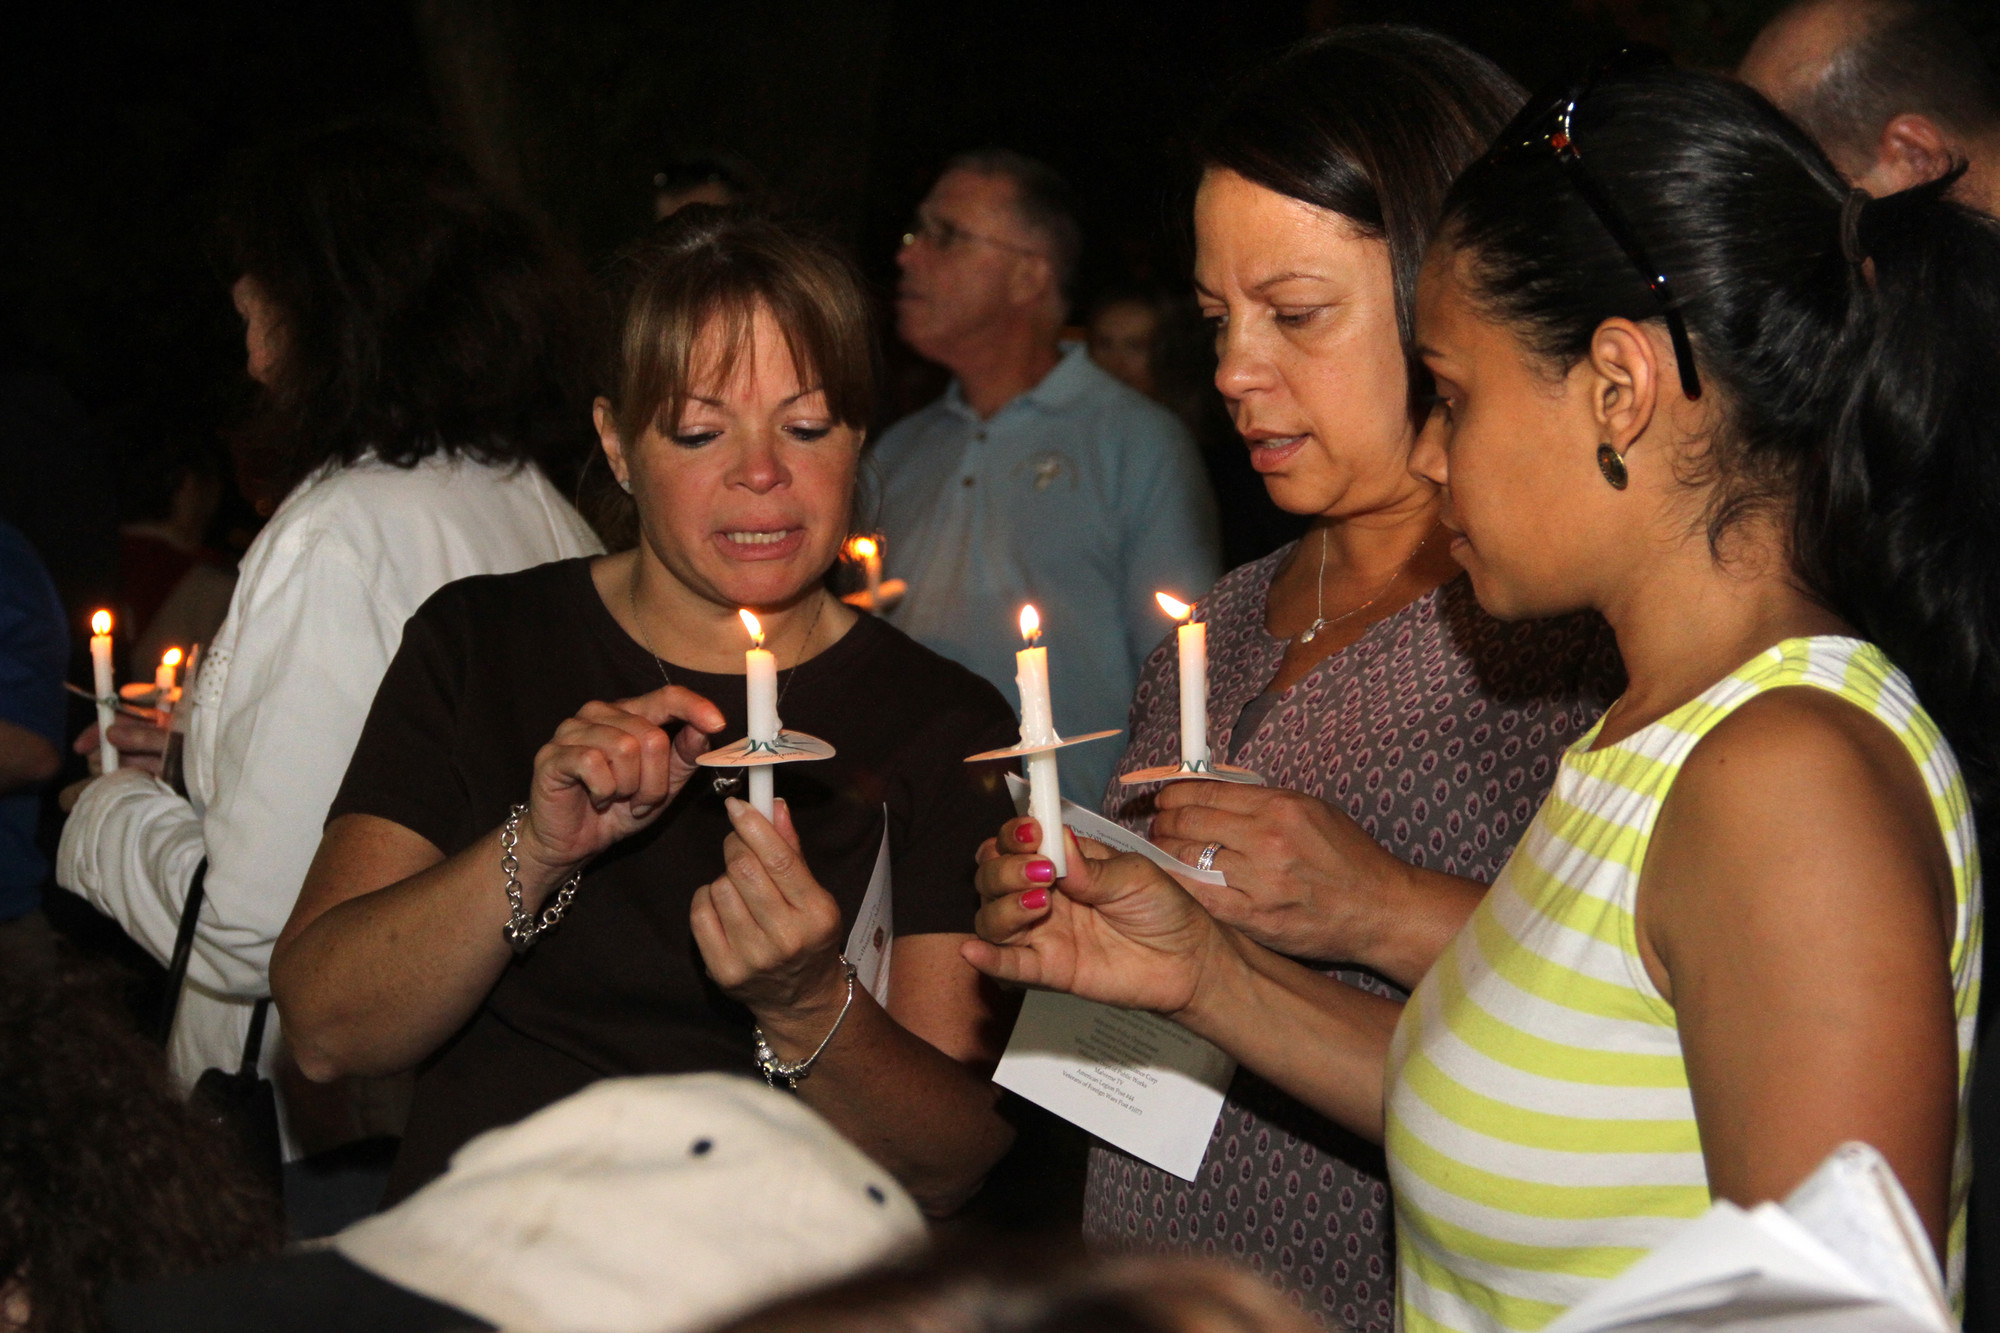 Lissette Ortolani, Sonia Mangual and Miriam McDaniels raised their candles at the Sept. 11 memorial service.